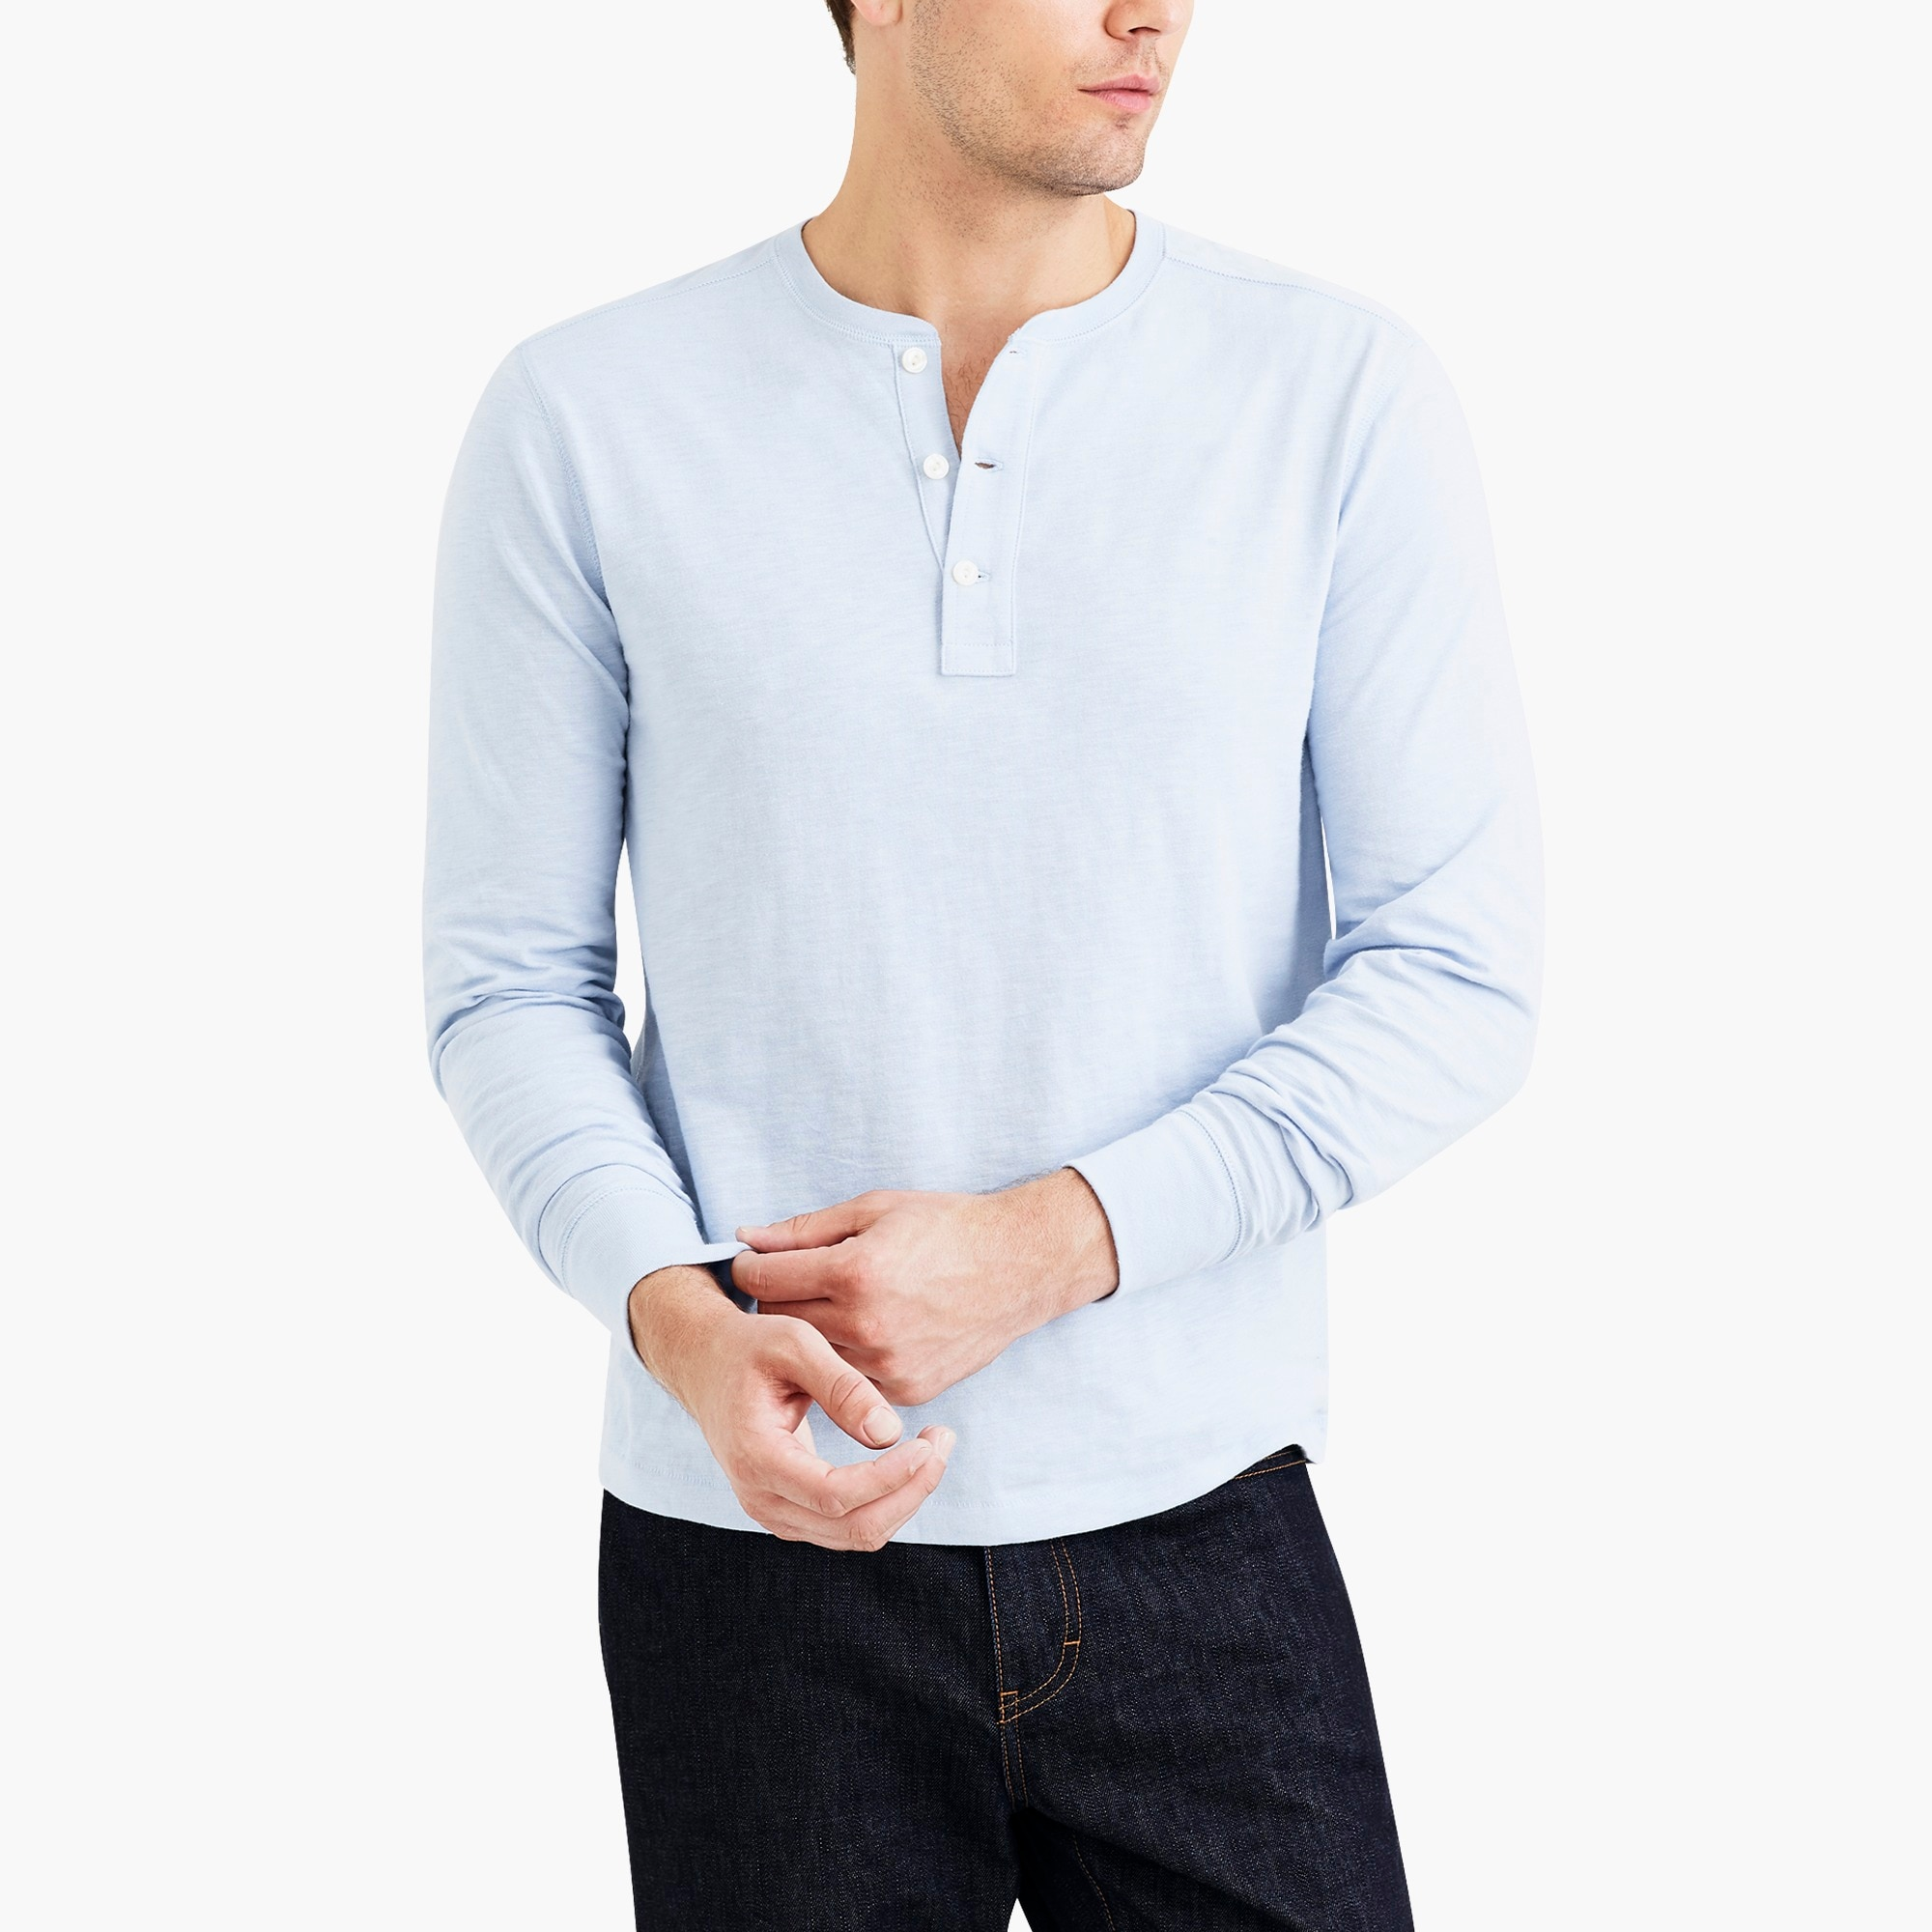 long-sleeve slub cotton henley : factorymen the score: men's pique polos